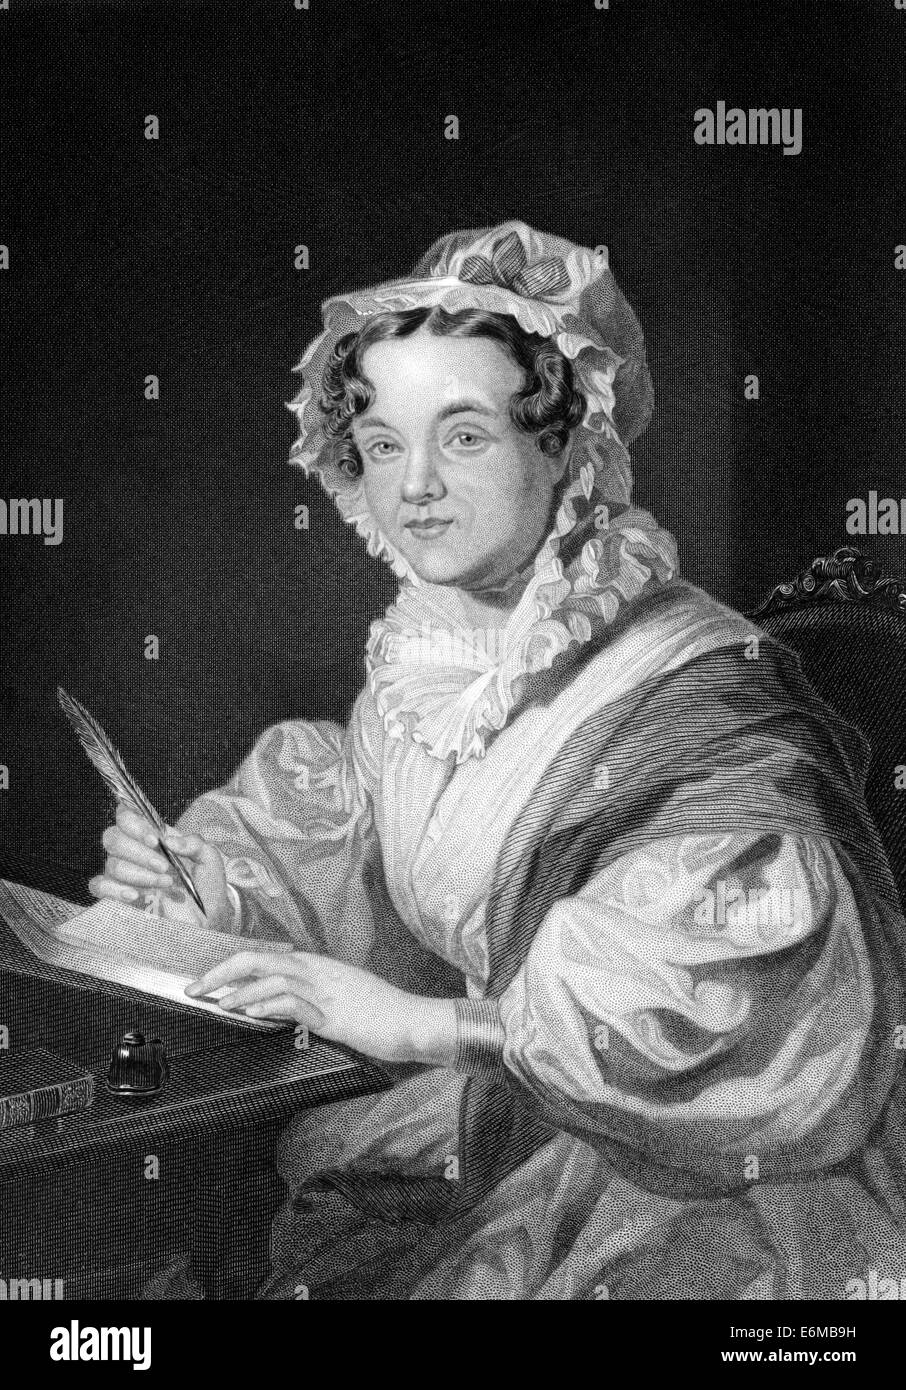 Mary Russell Mitford (1787-1855) on engraving from 1873. English author and dramatist. - Stock Image